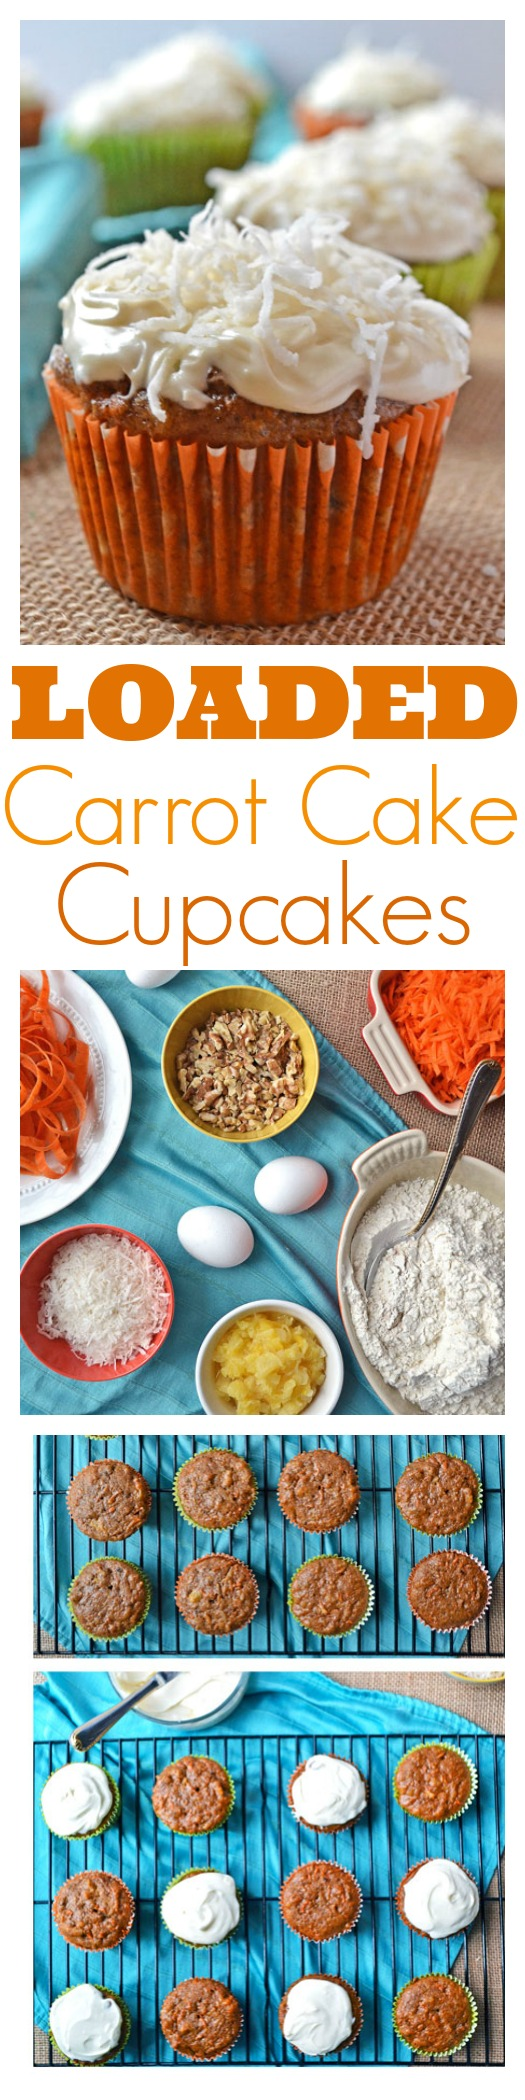 Loaded Carrot Cake Cupcakes // Well-Plated